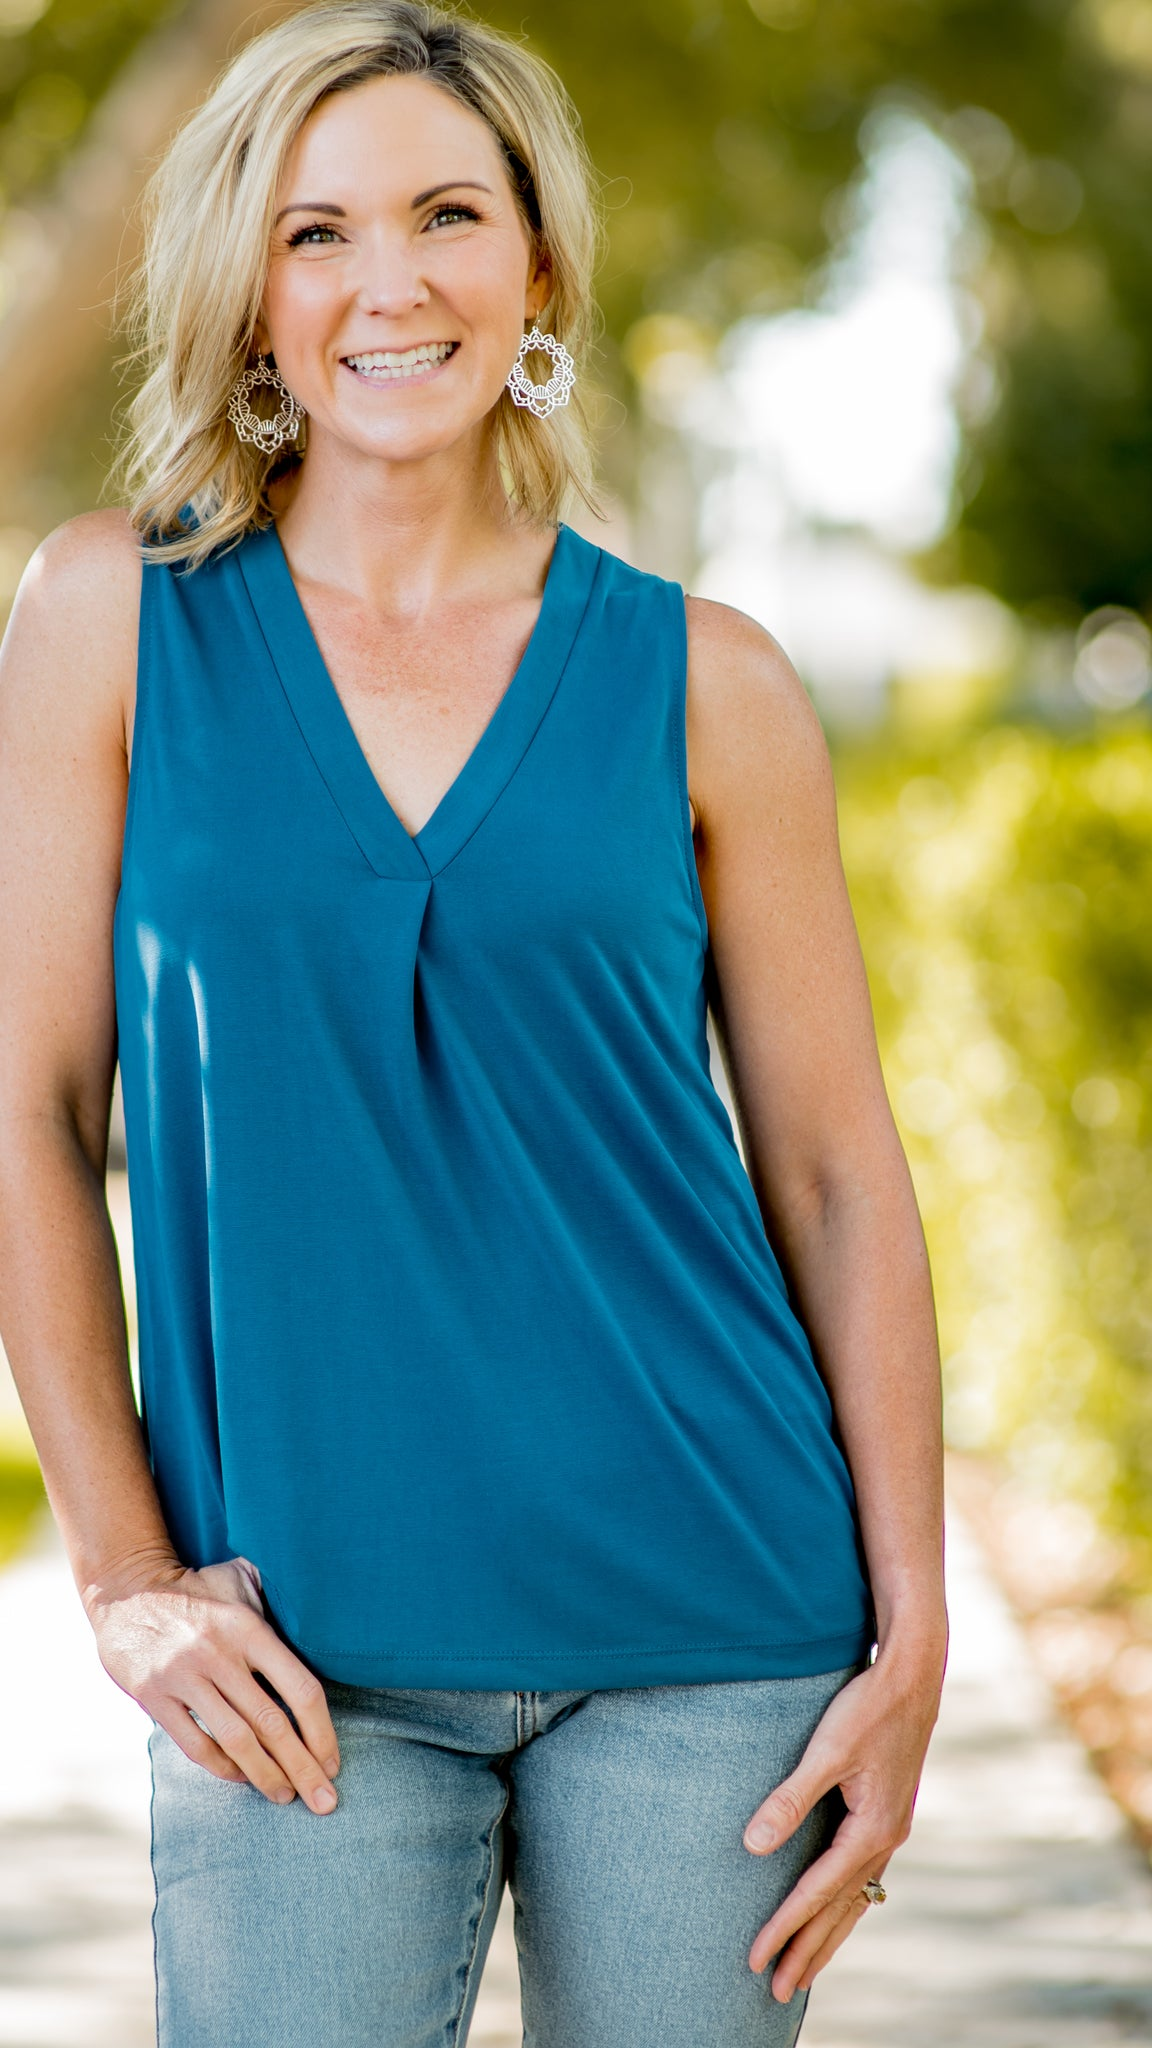 RESTOCKED!! Pleat Front V-Neck Sleeveless Top-4 Colors!